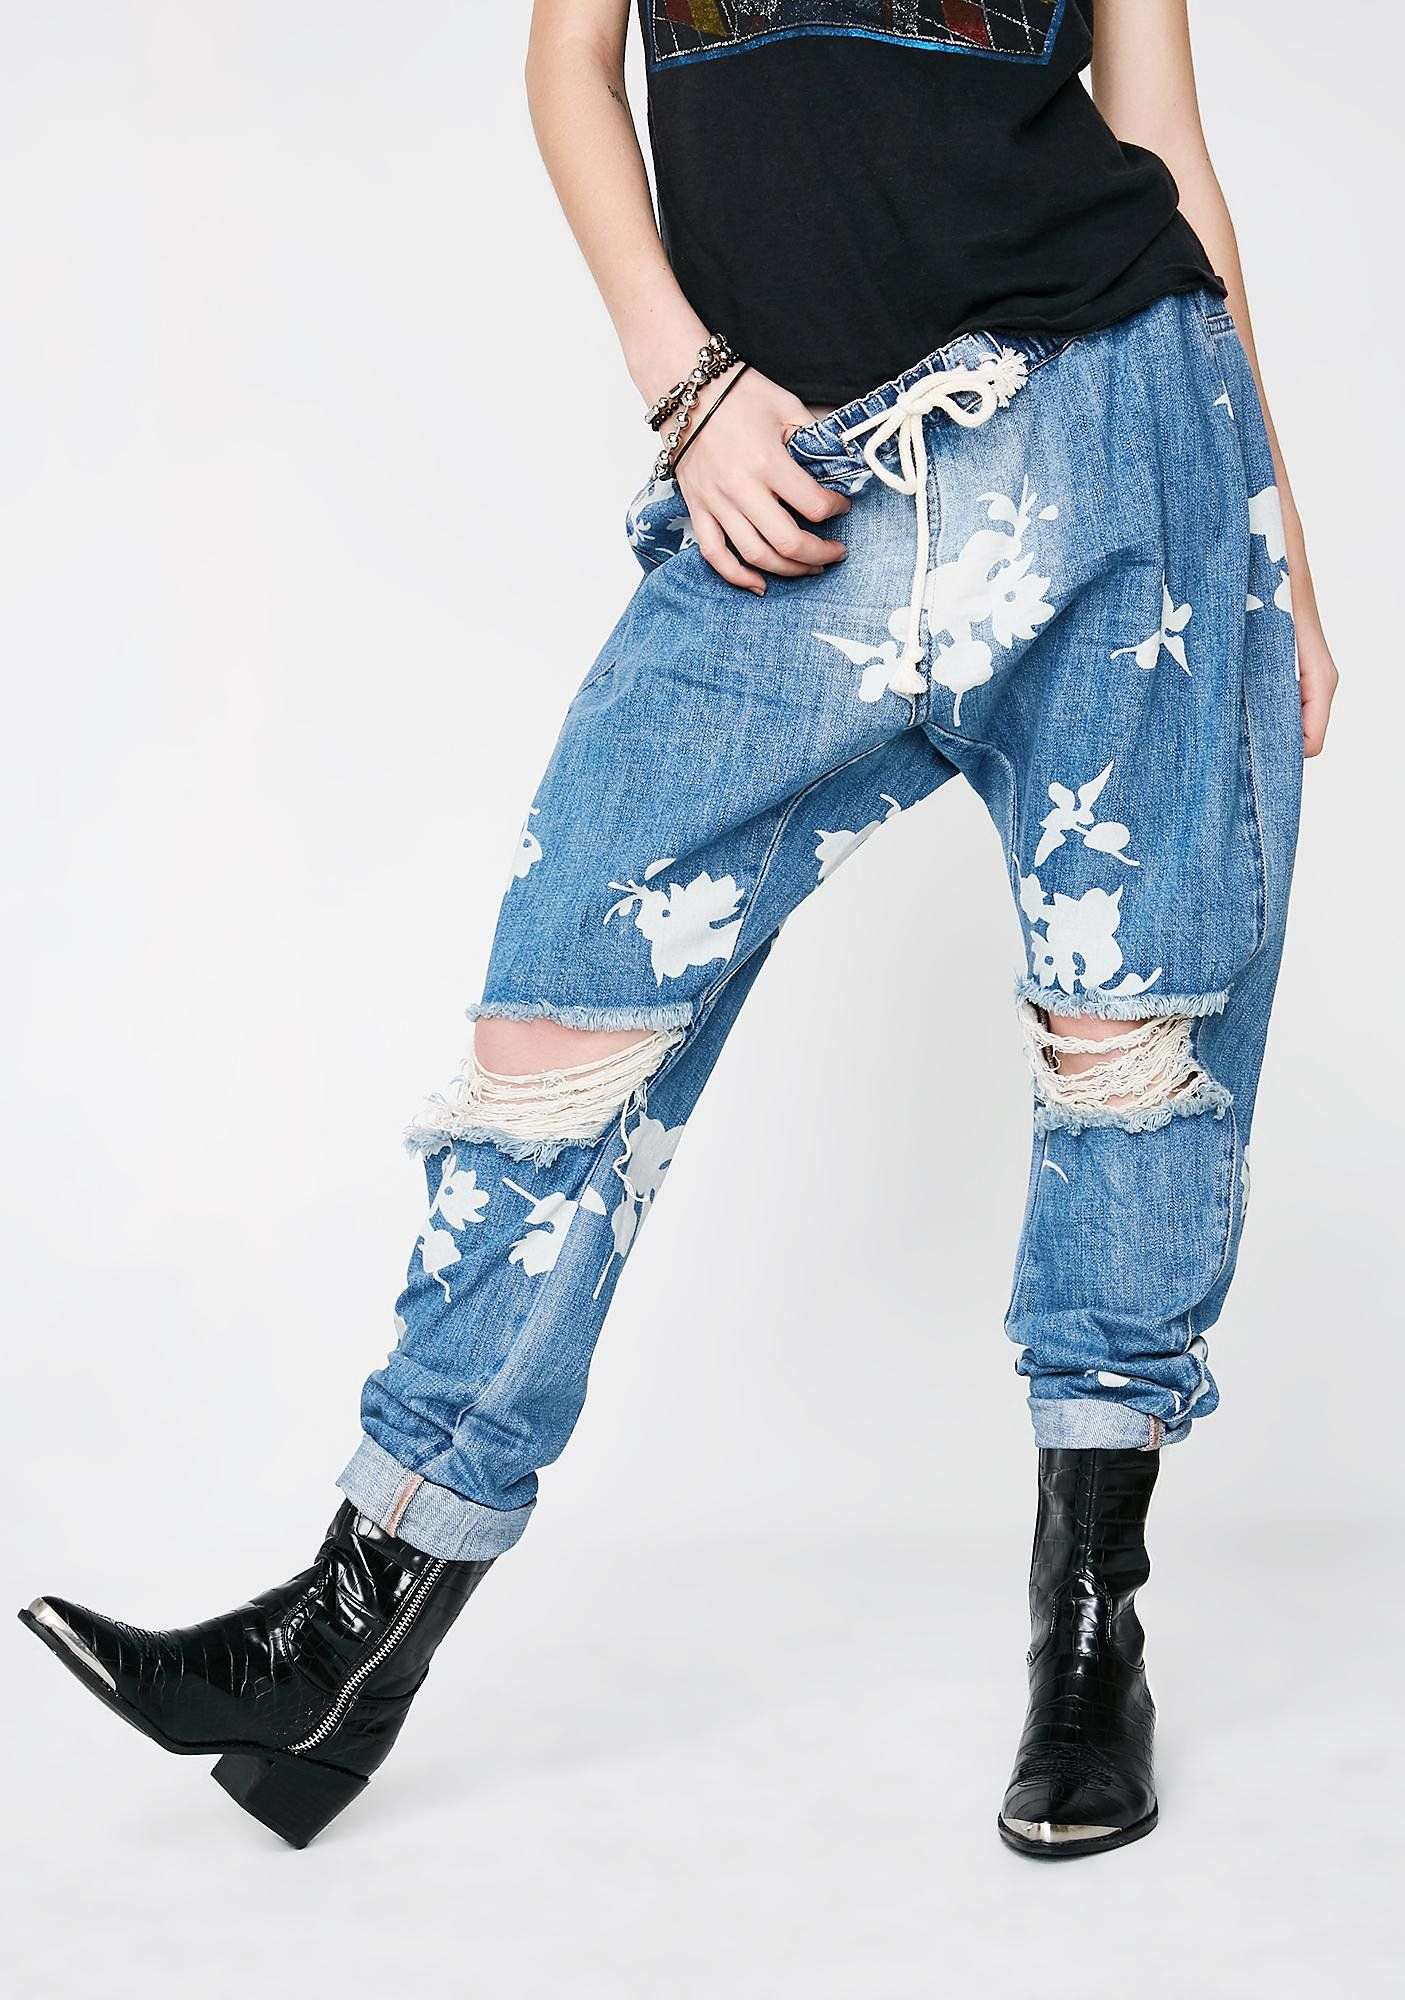 d1f99b285bd One Teaspoon Shabbies Drawstring Boyfriend Jeans cuz you ain't too shabby.  Chill with these boyfriend jeans that have distressed details N' a floral  print ...